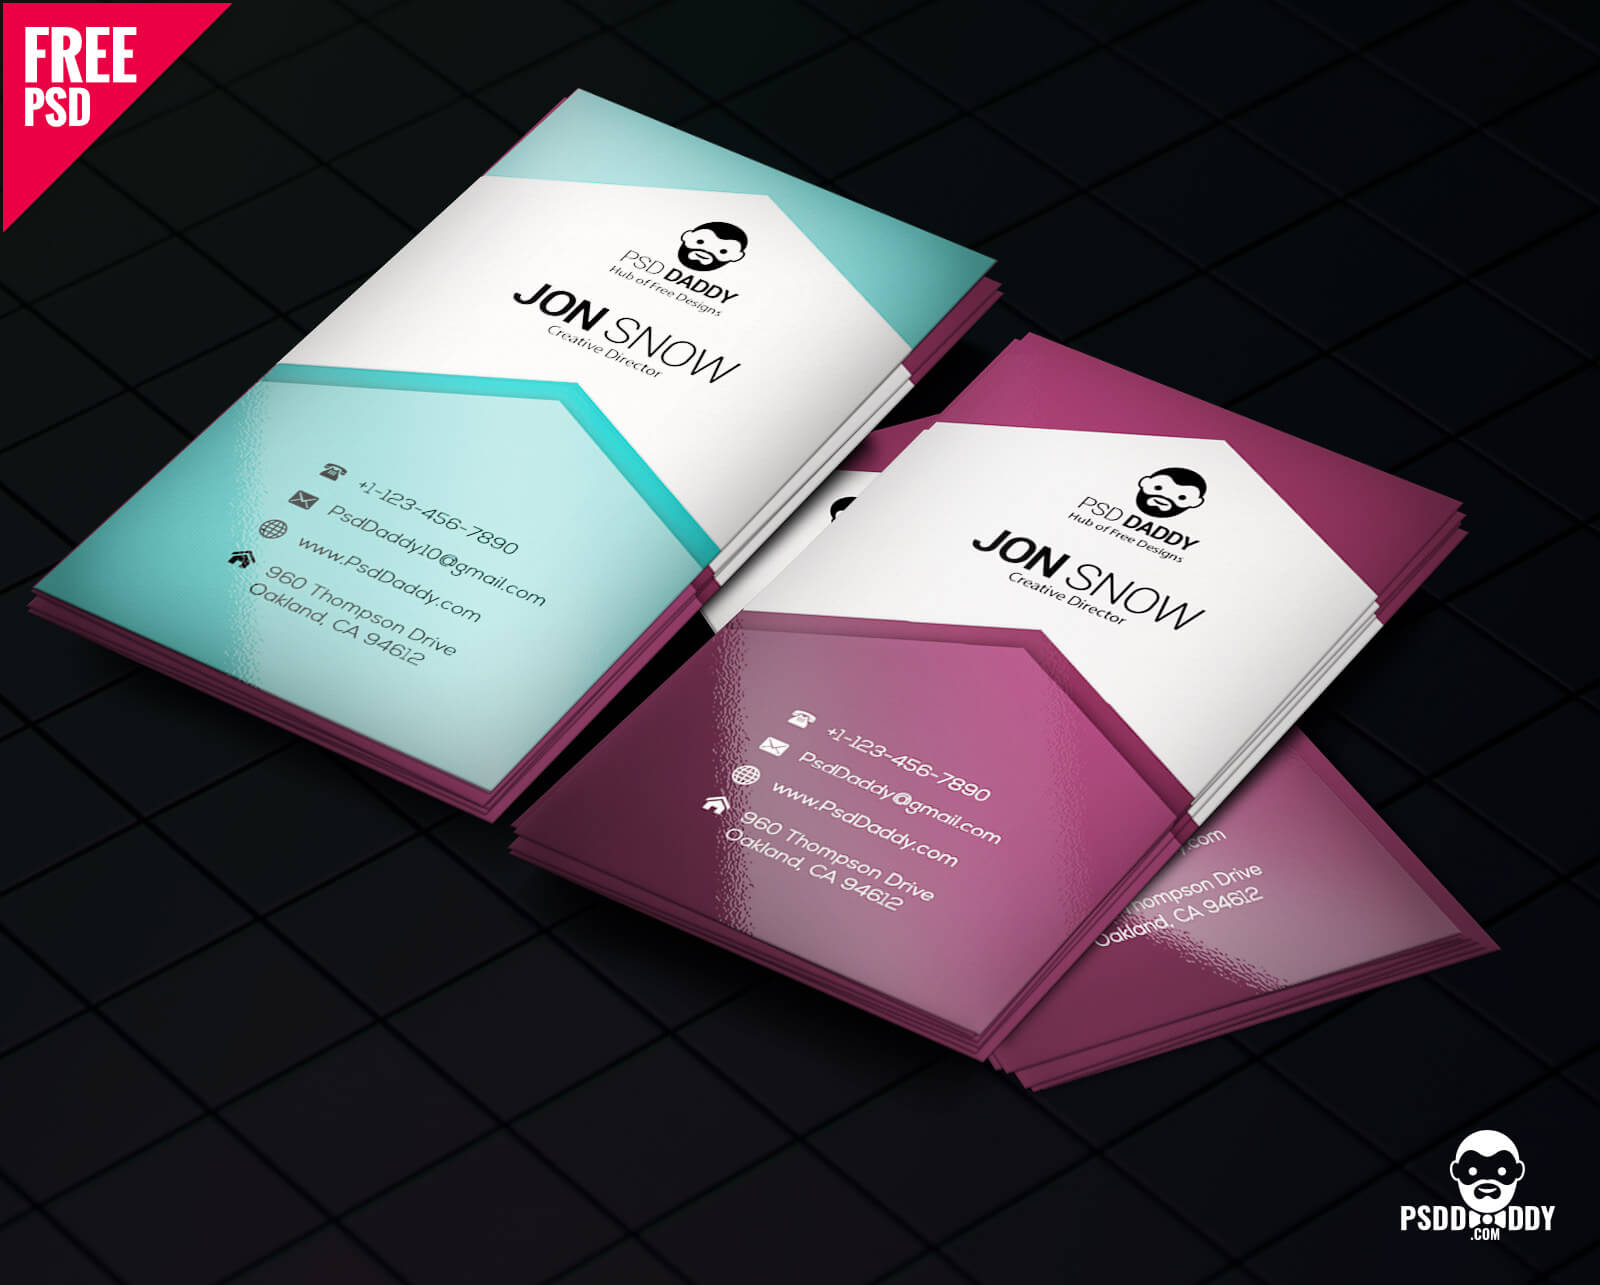 Download]Creative Business Card Psd Free | Psddaddy Pertaining To Business Card Template Size Photoshop